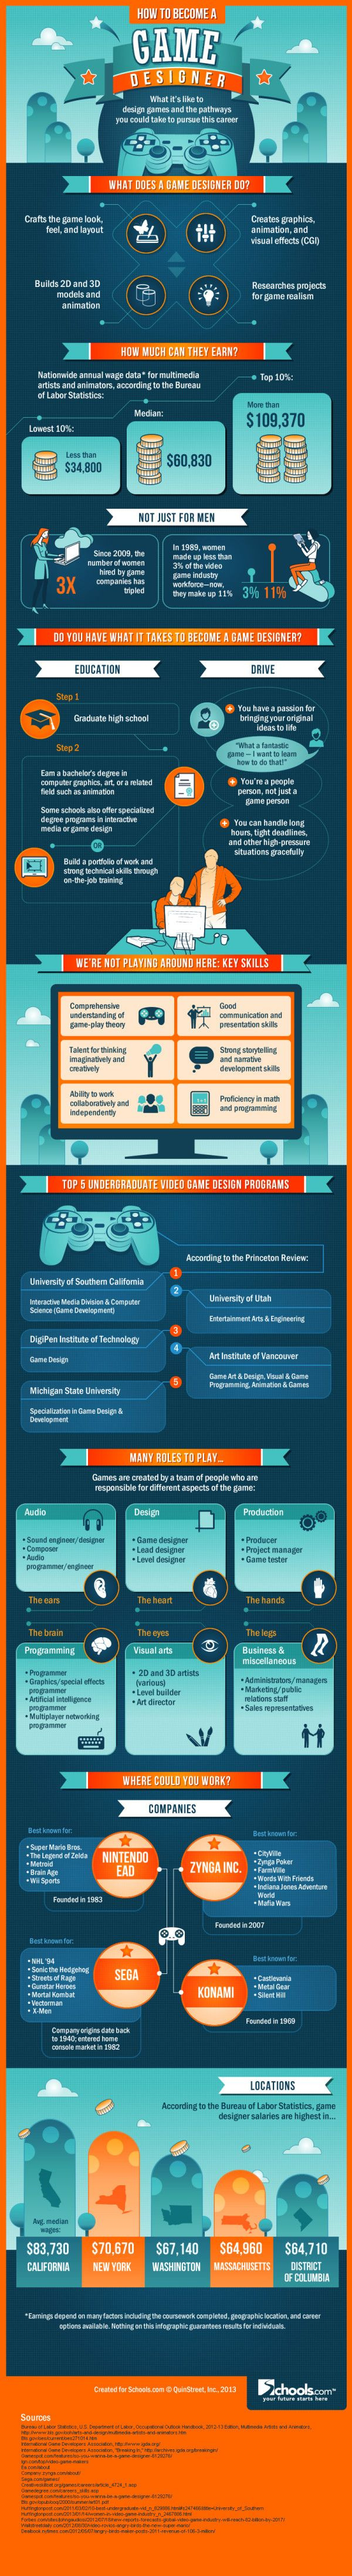 How To A Game Designer Infographic Game design